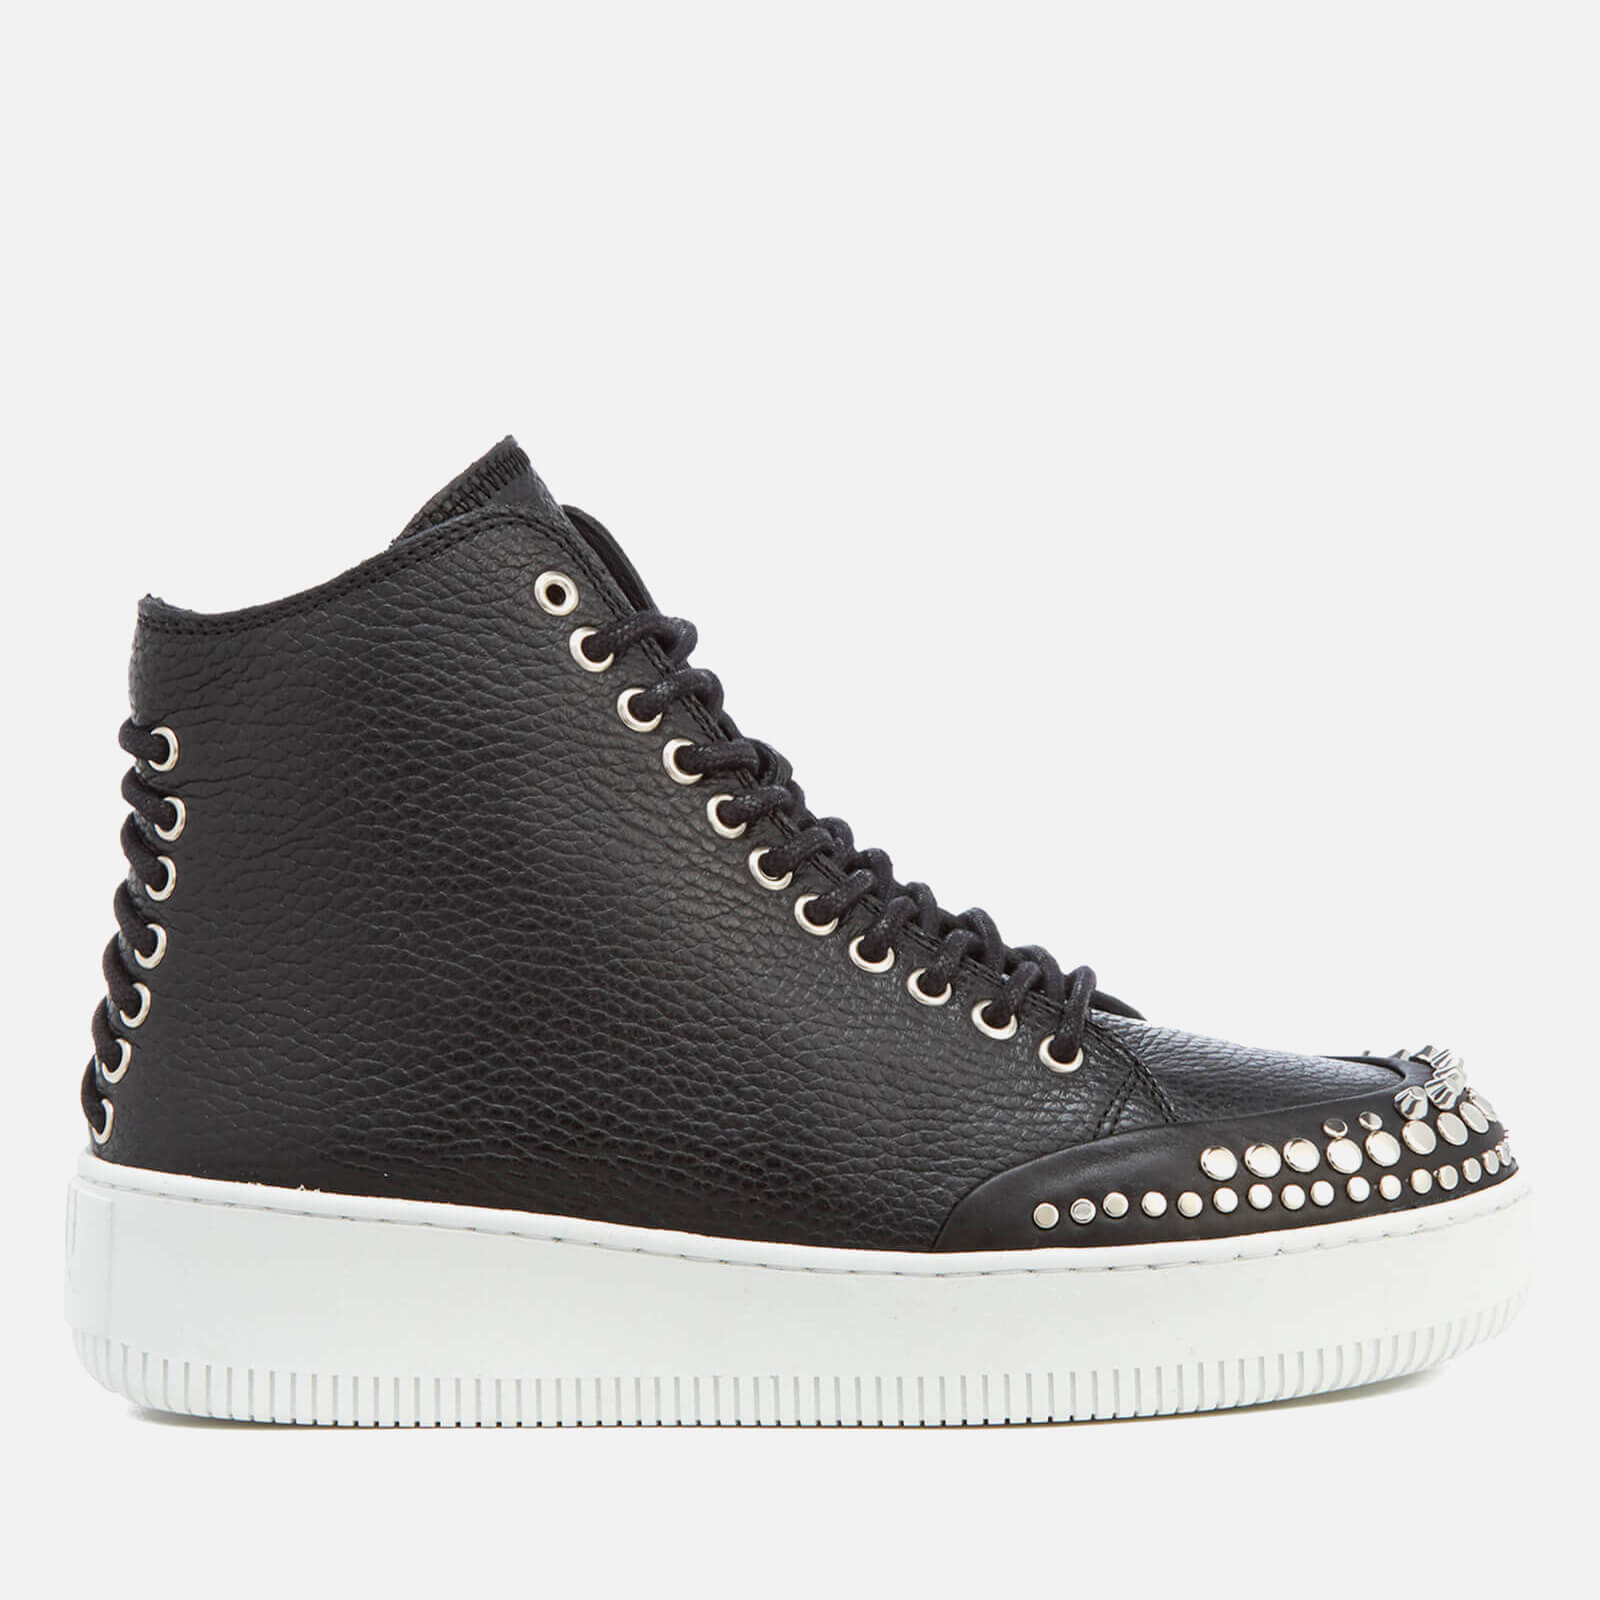 8dc5eedc3e81 ... McQ Alexander McQueen Women s Netil Laced Eyelets Leather Hi-Top  Trainers - Black